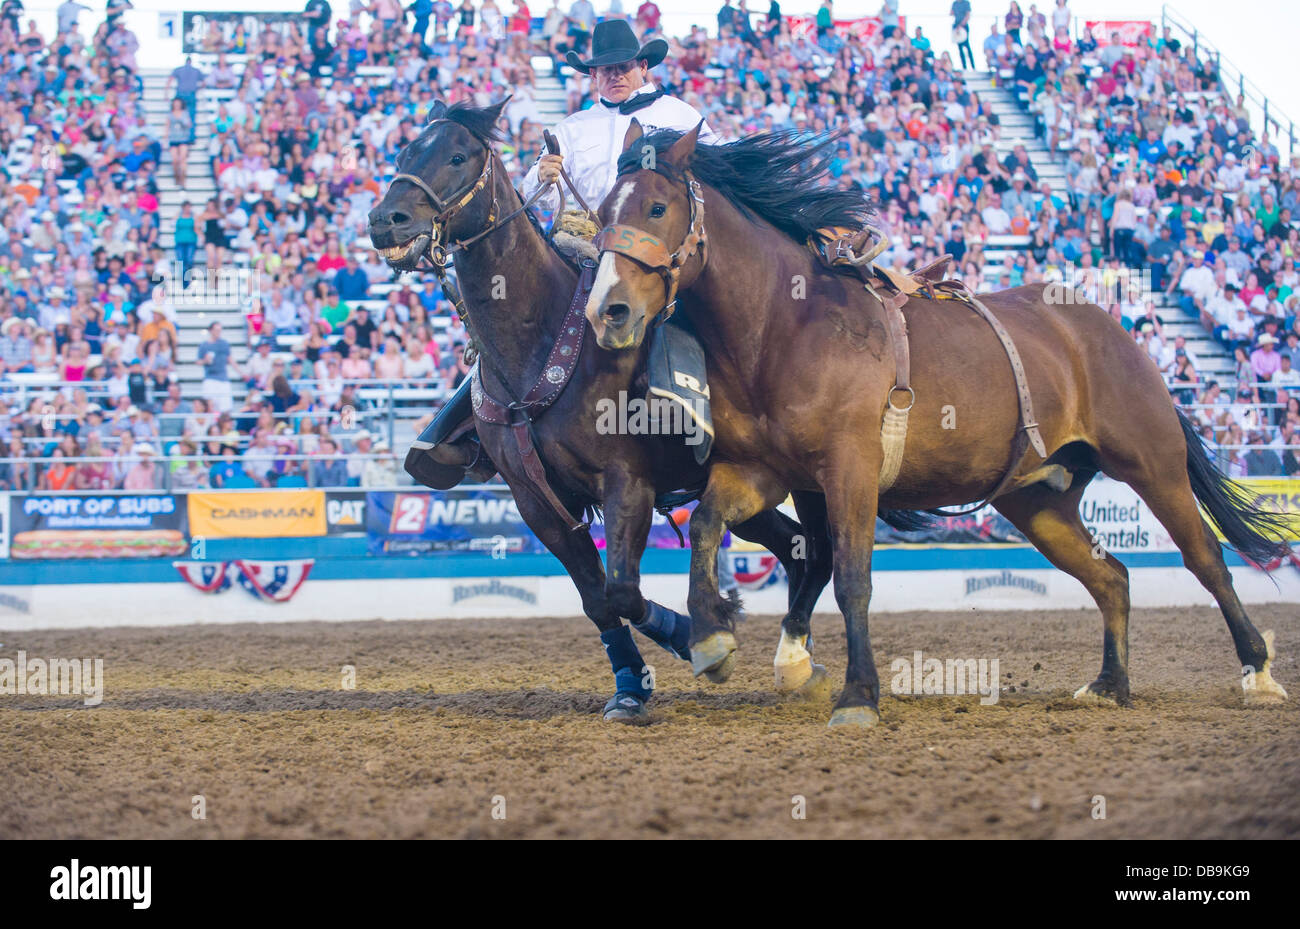 Cowboy Participant at the Reno Rodeo Professional Rodeo held in Reno Nevada - Stock Image